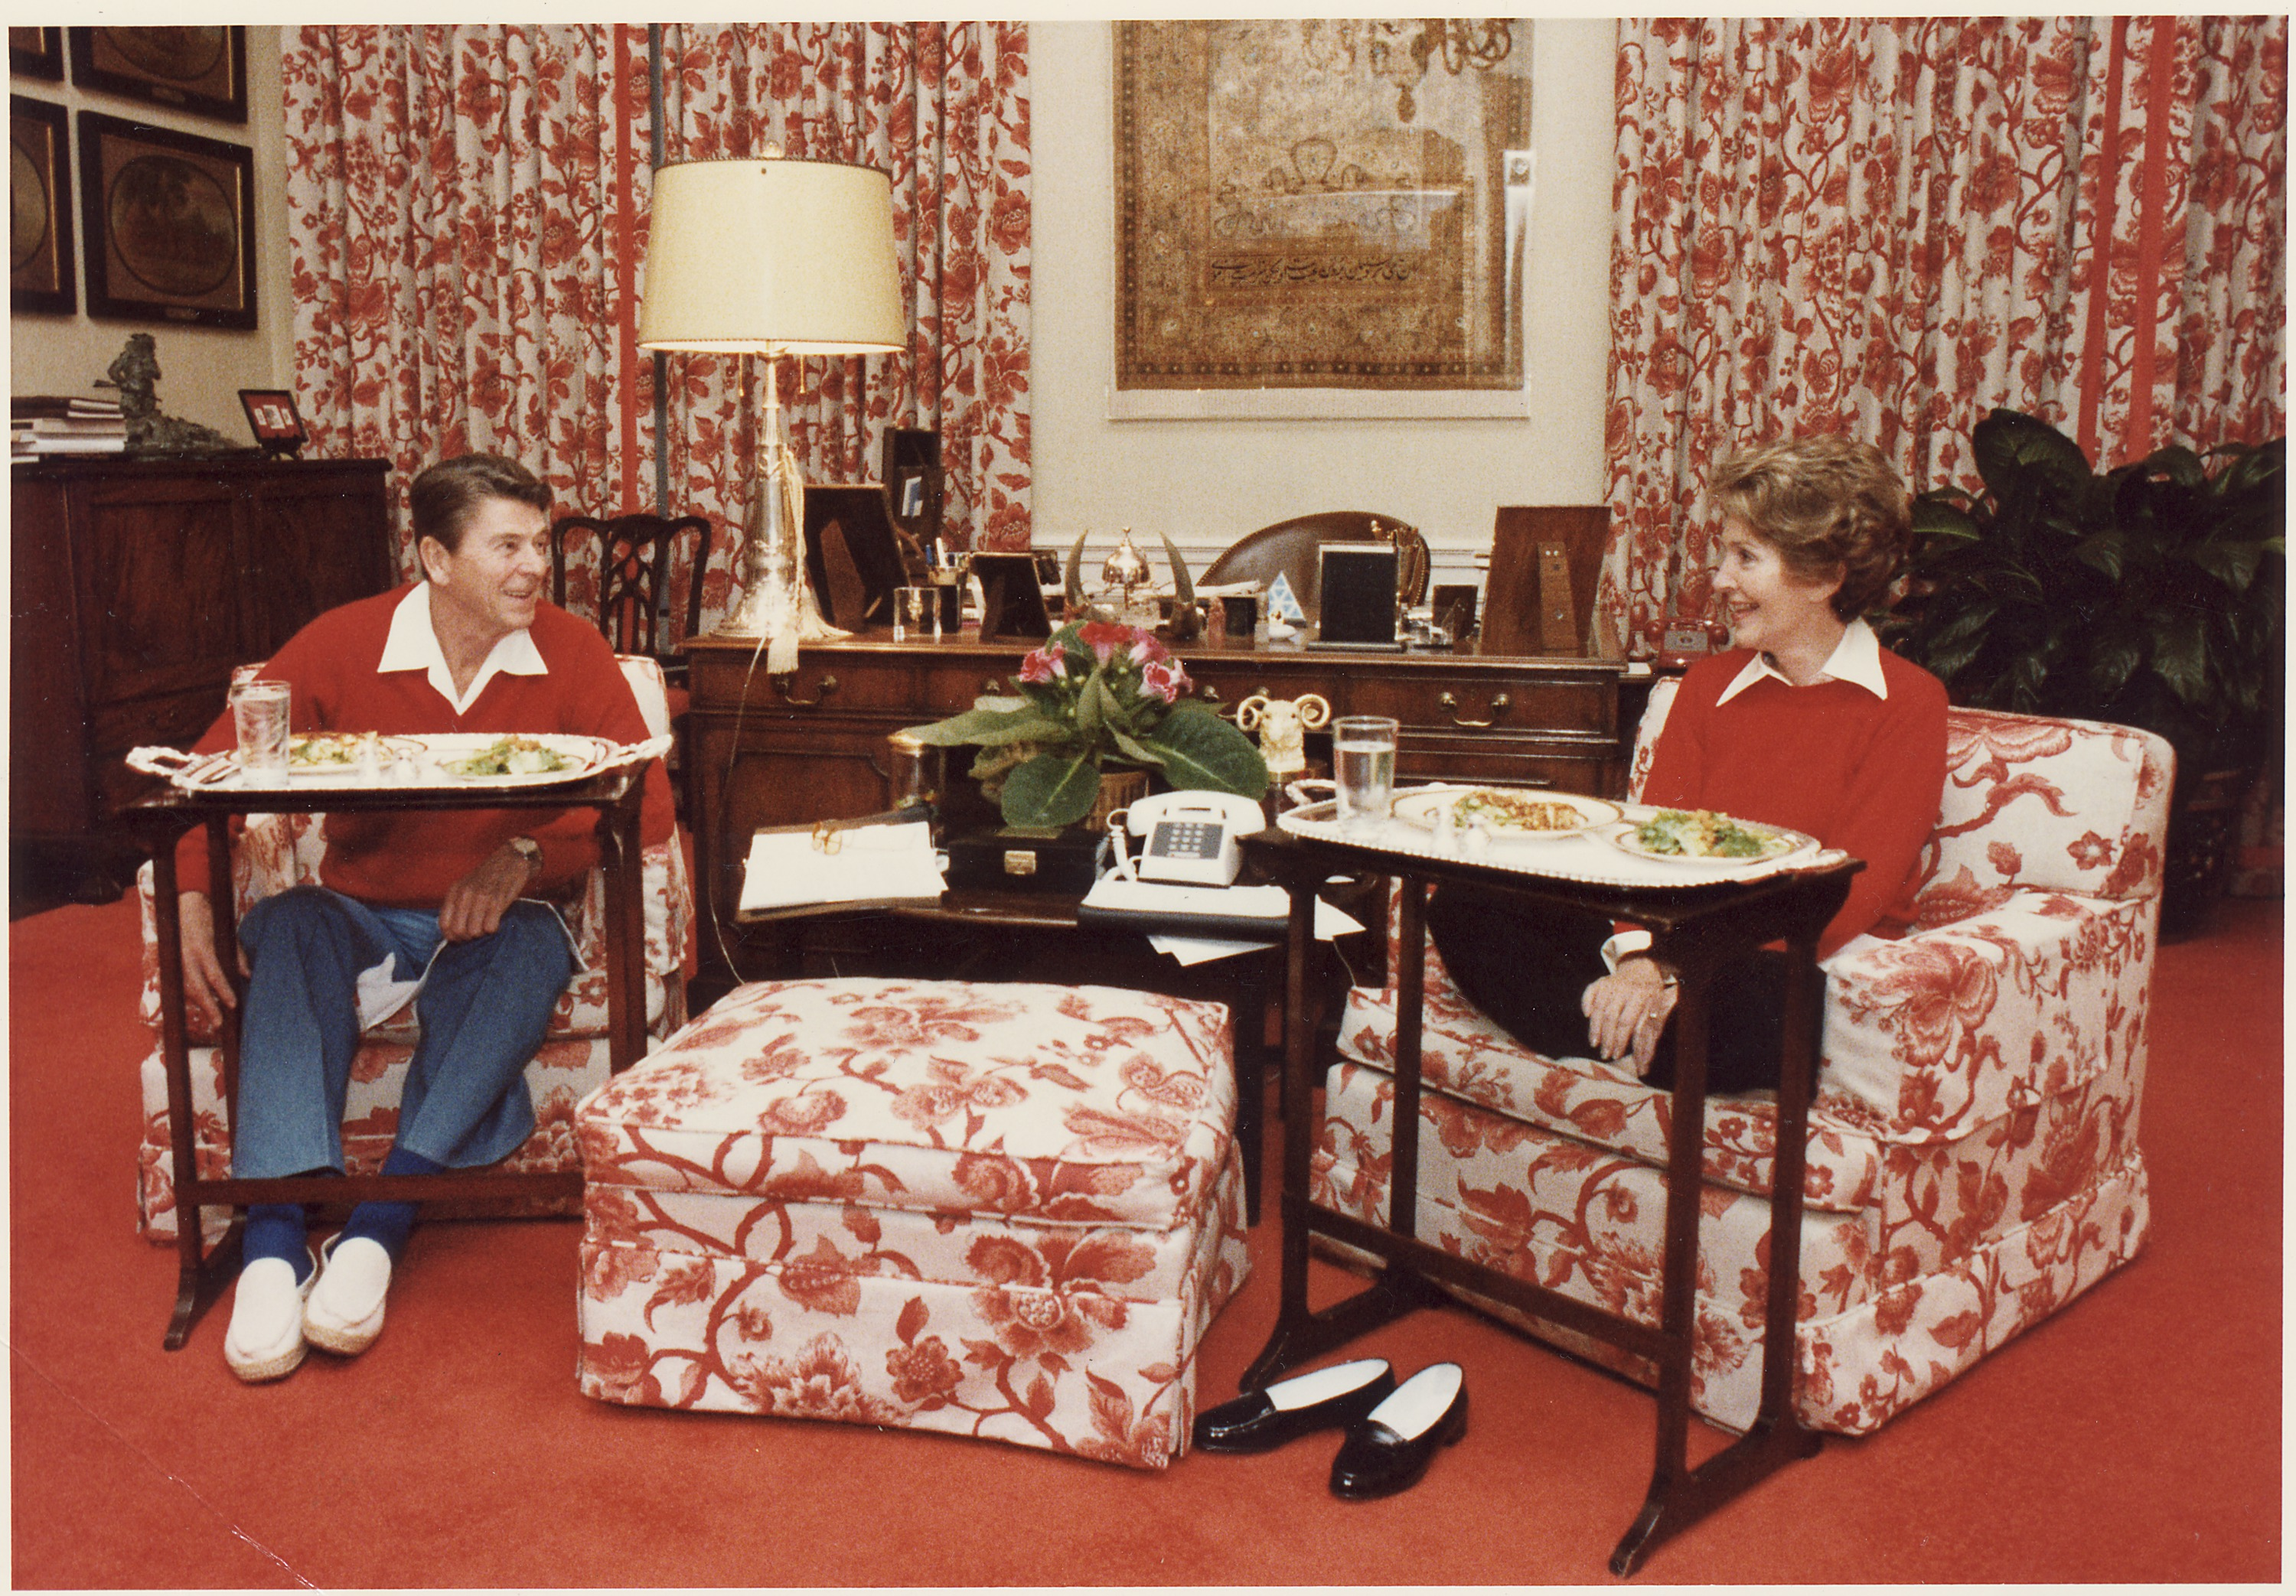 TV dinners at the White House